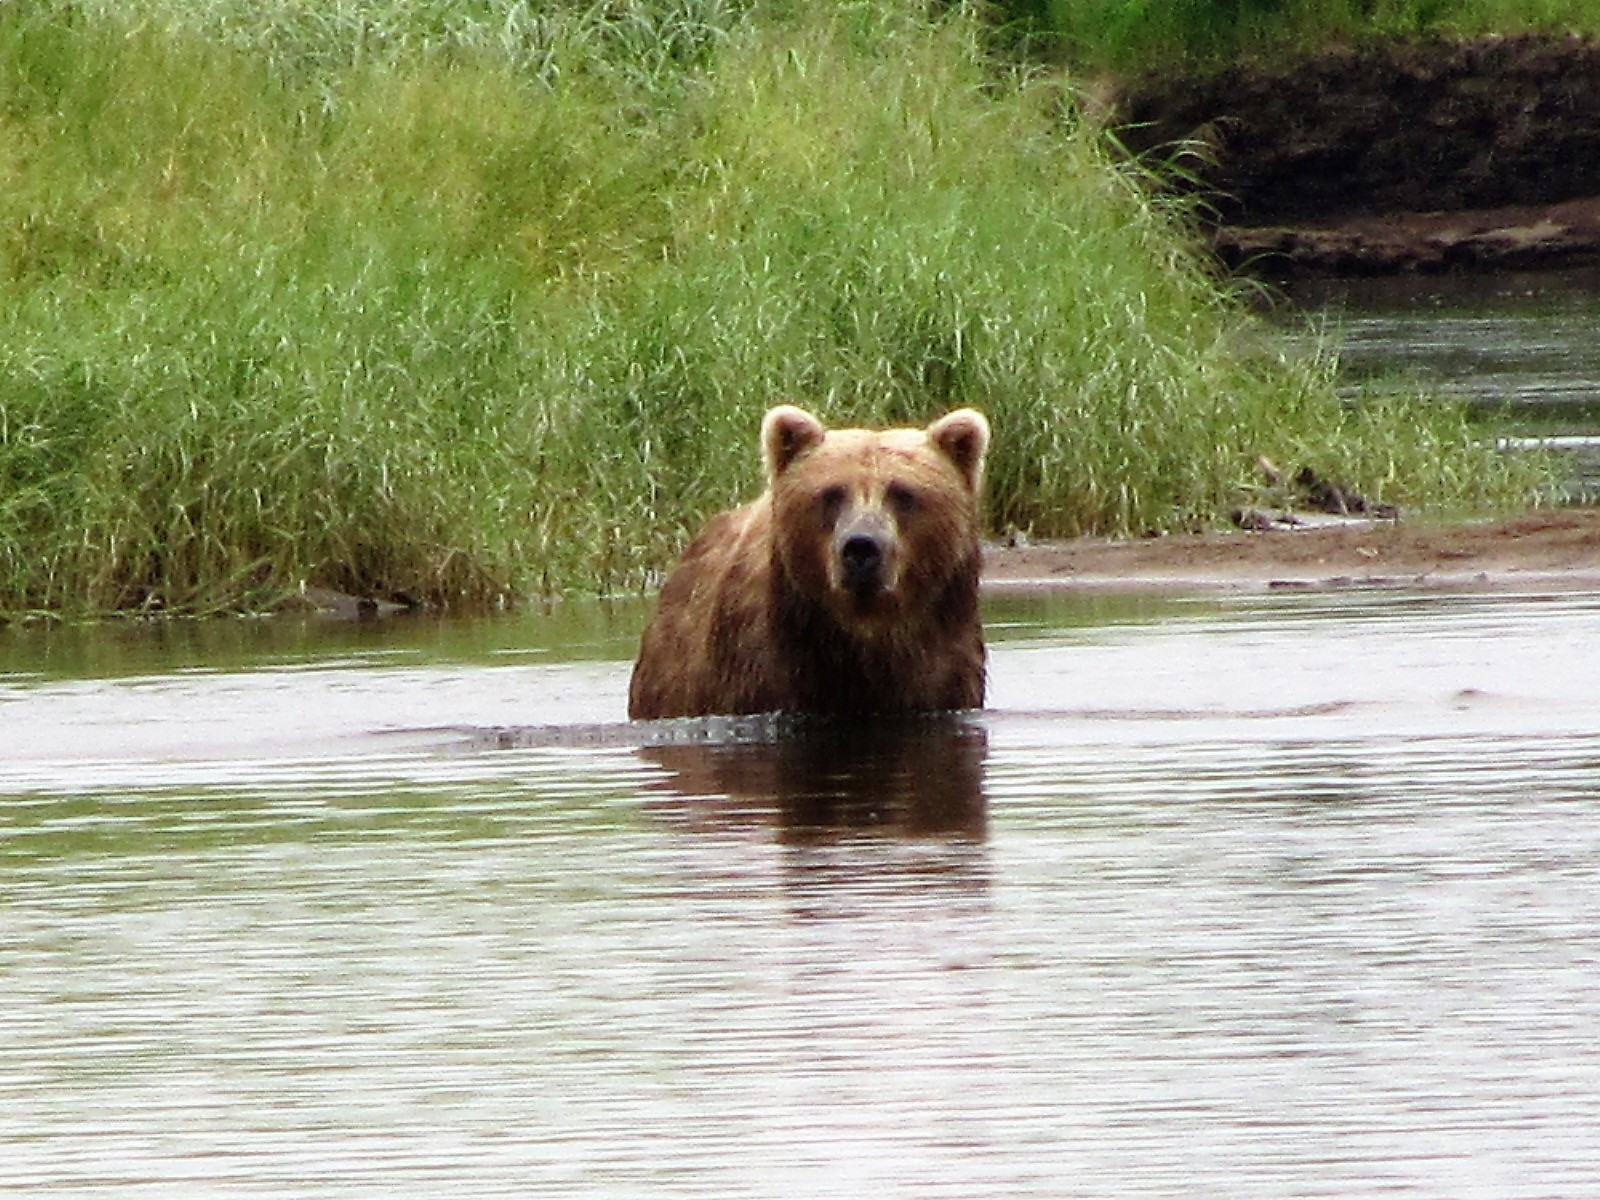 Bear in water near bank